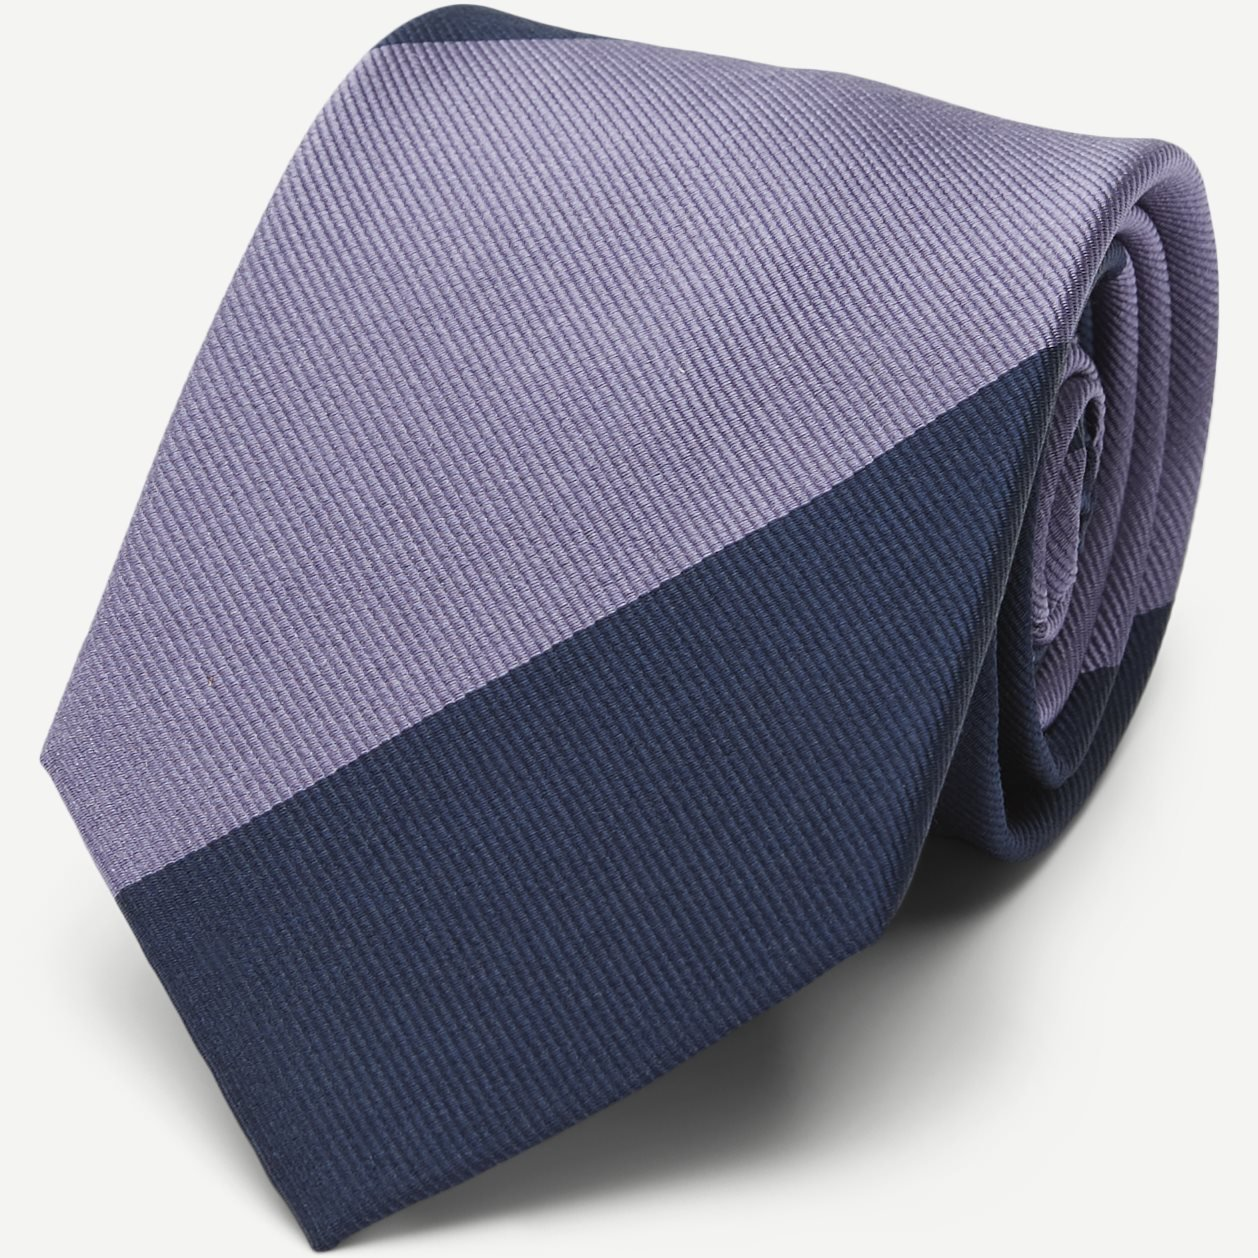 Block Silk Tie 7,5 cm - Ties - Blue